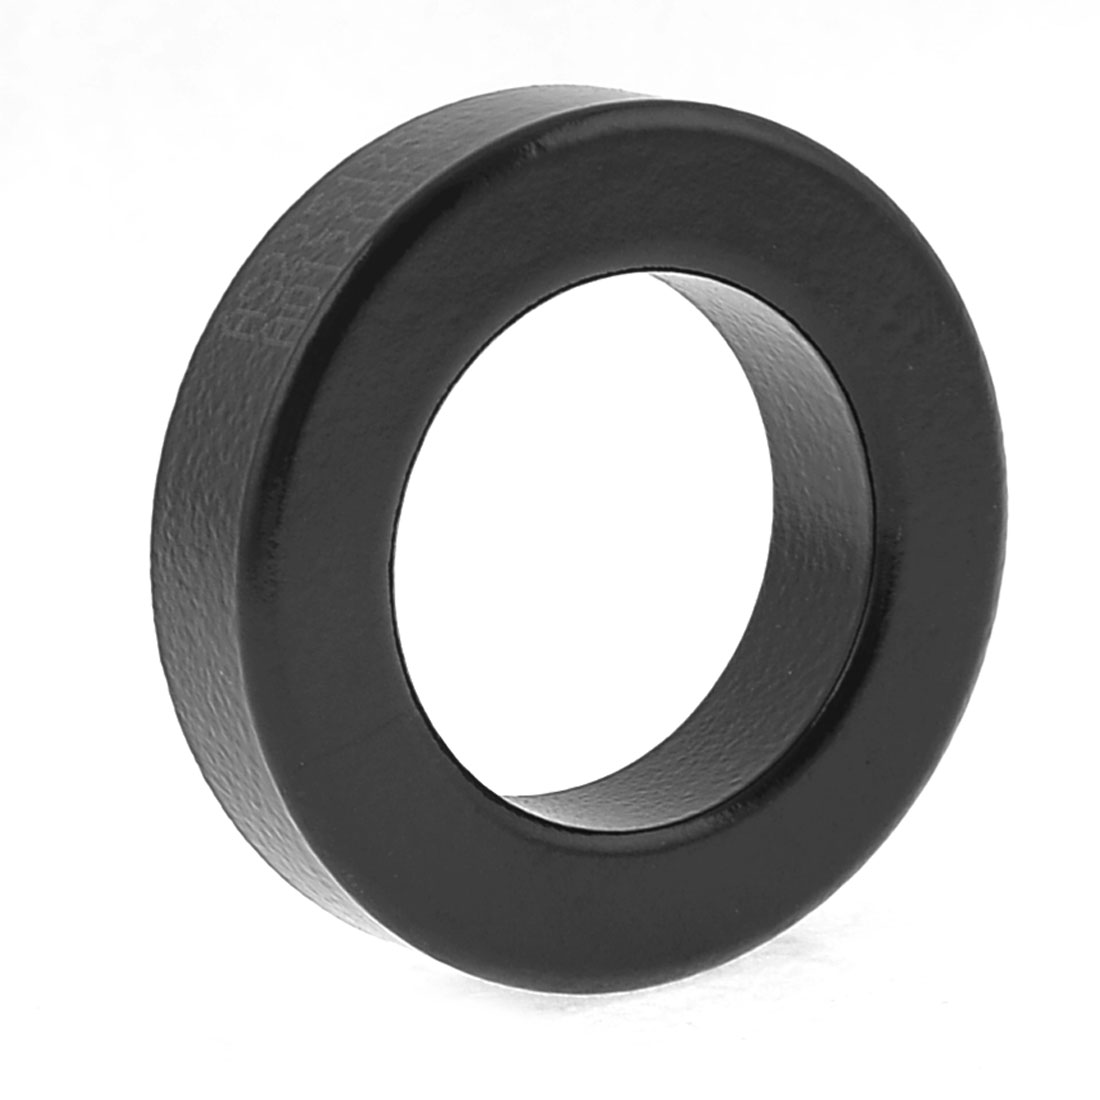 Transformer Choking Coil Parts Toroid Ferrite Core AS225-125A Black